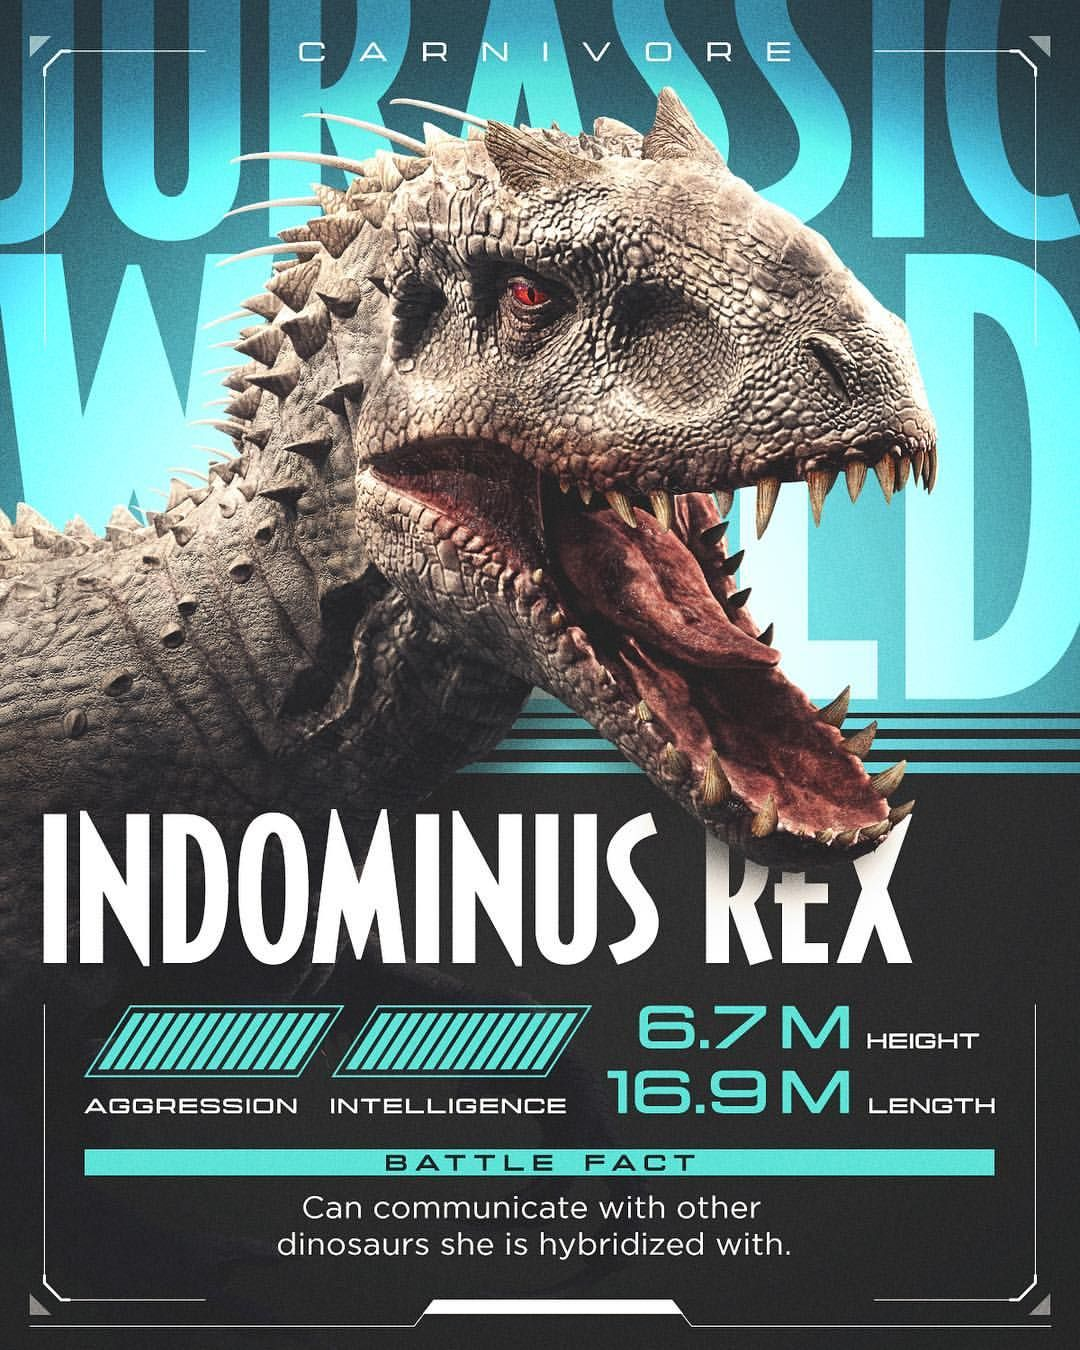 jurassicworld Two enter, one will win. First up Indominus